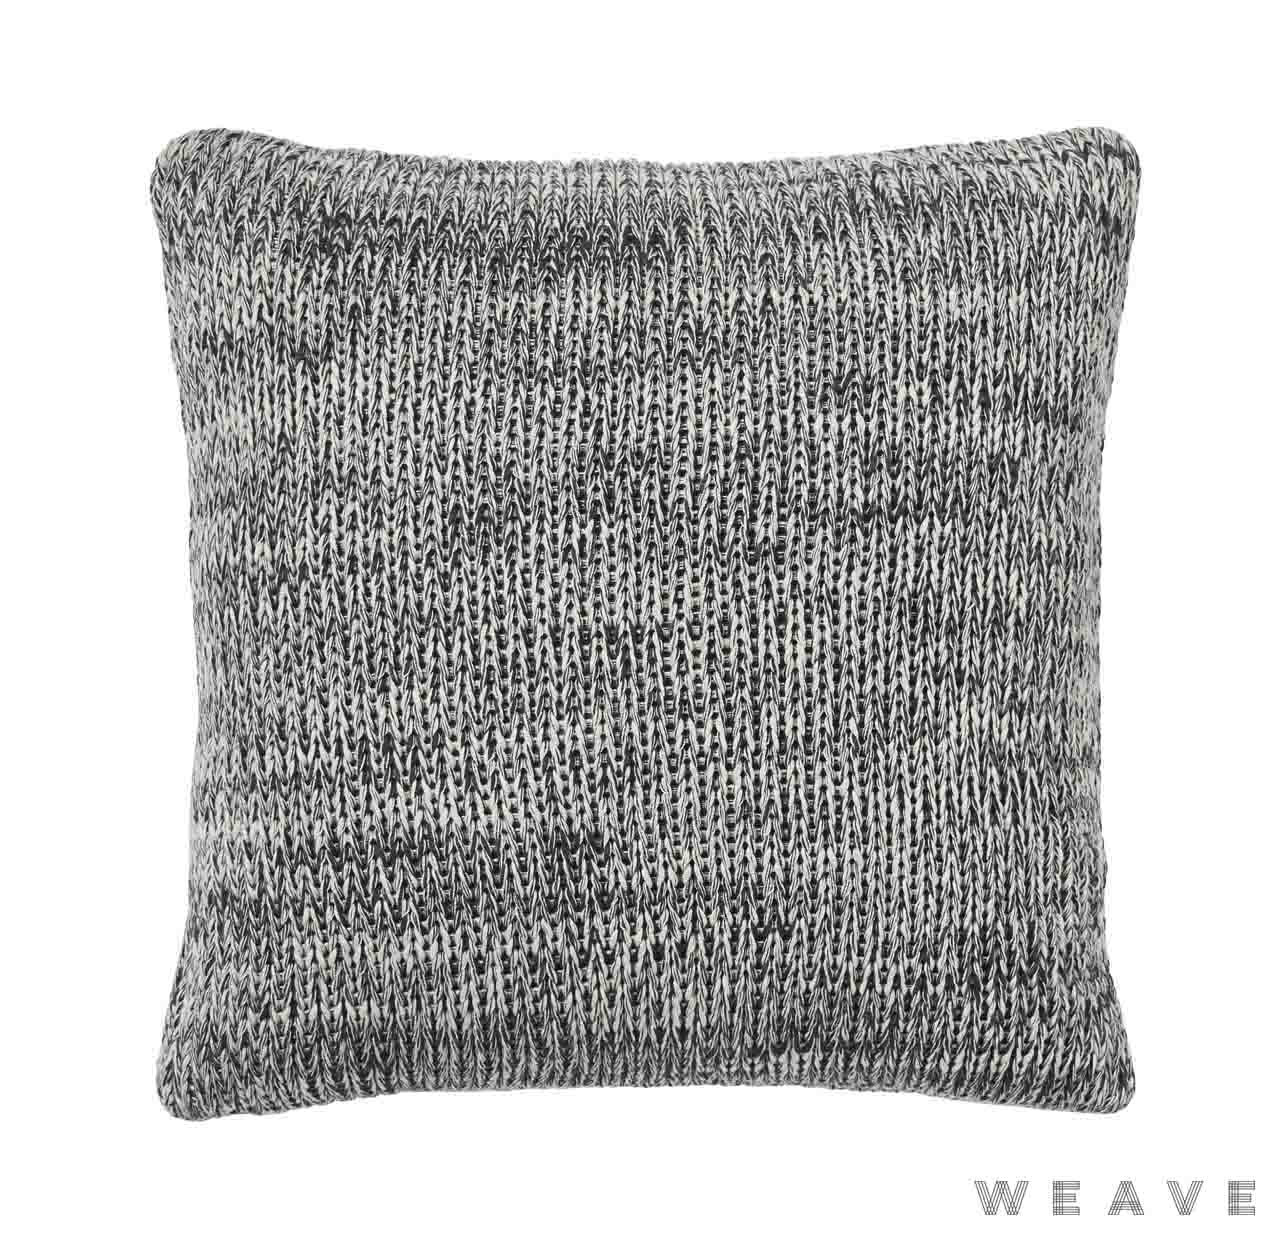 Weave - Monterey Cushion - Tar (Pack of 2)  | Cusion Fabric - Black - Charcoal, Weave